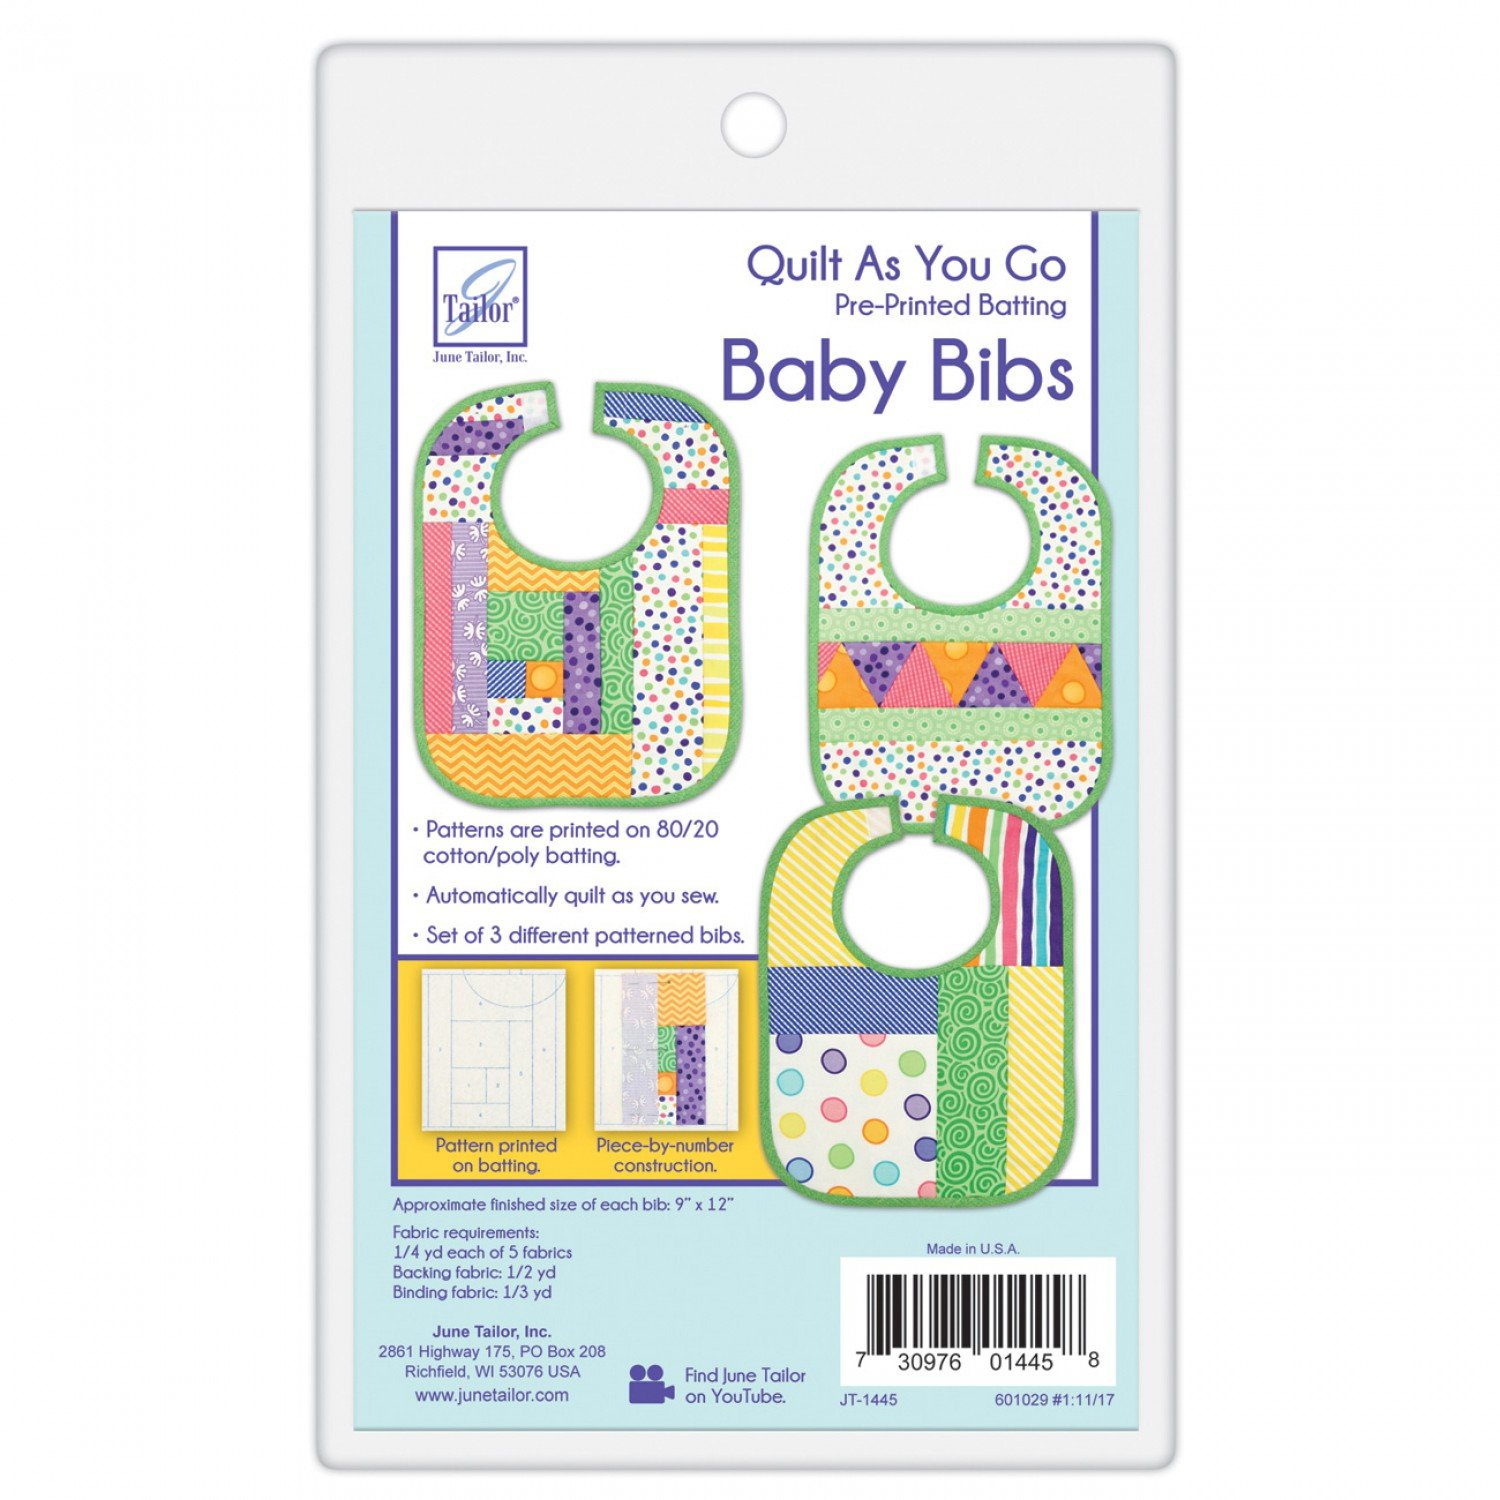 Quilt As You Go Baby Bib Patterns by June Tailor